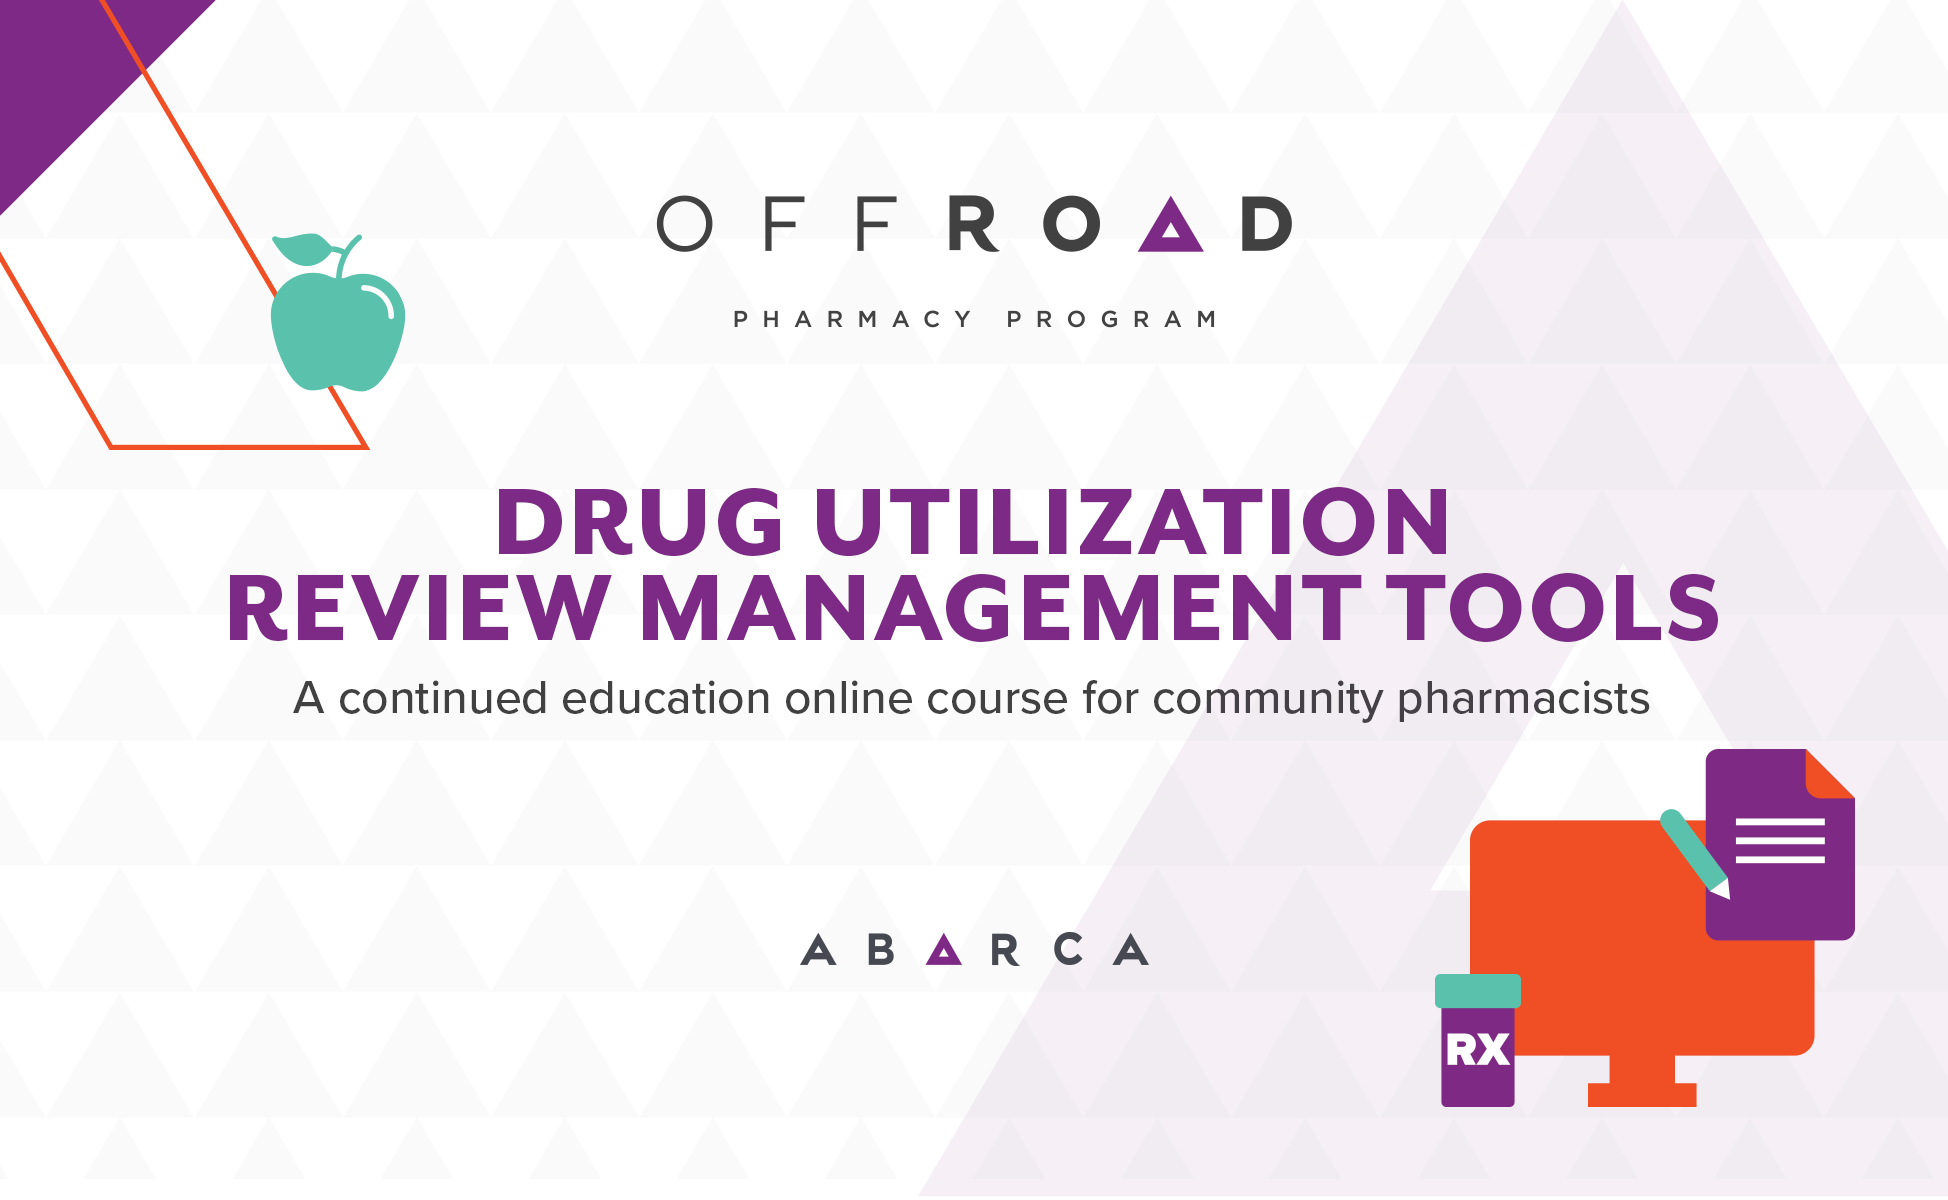 Abarca teams up with Colegio de Farmacéticos de Puerto Rico to offer our first online continuing education course for community pharmacists